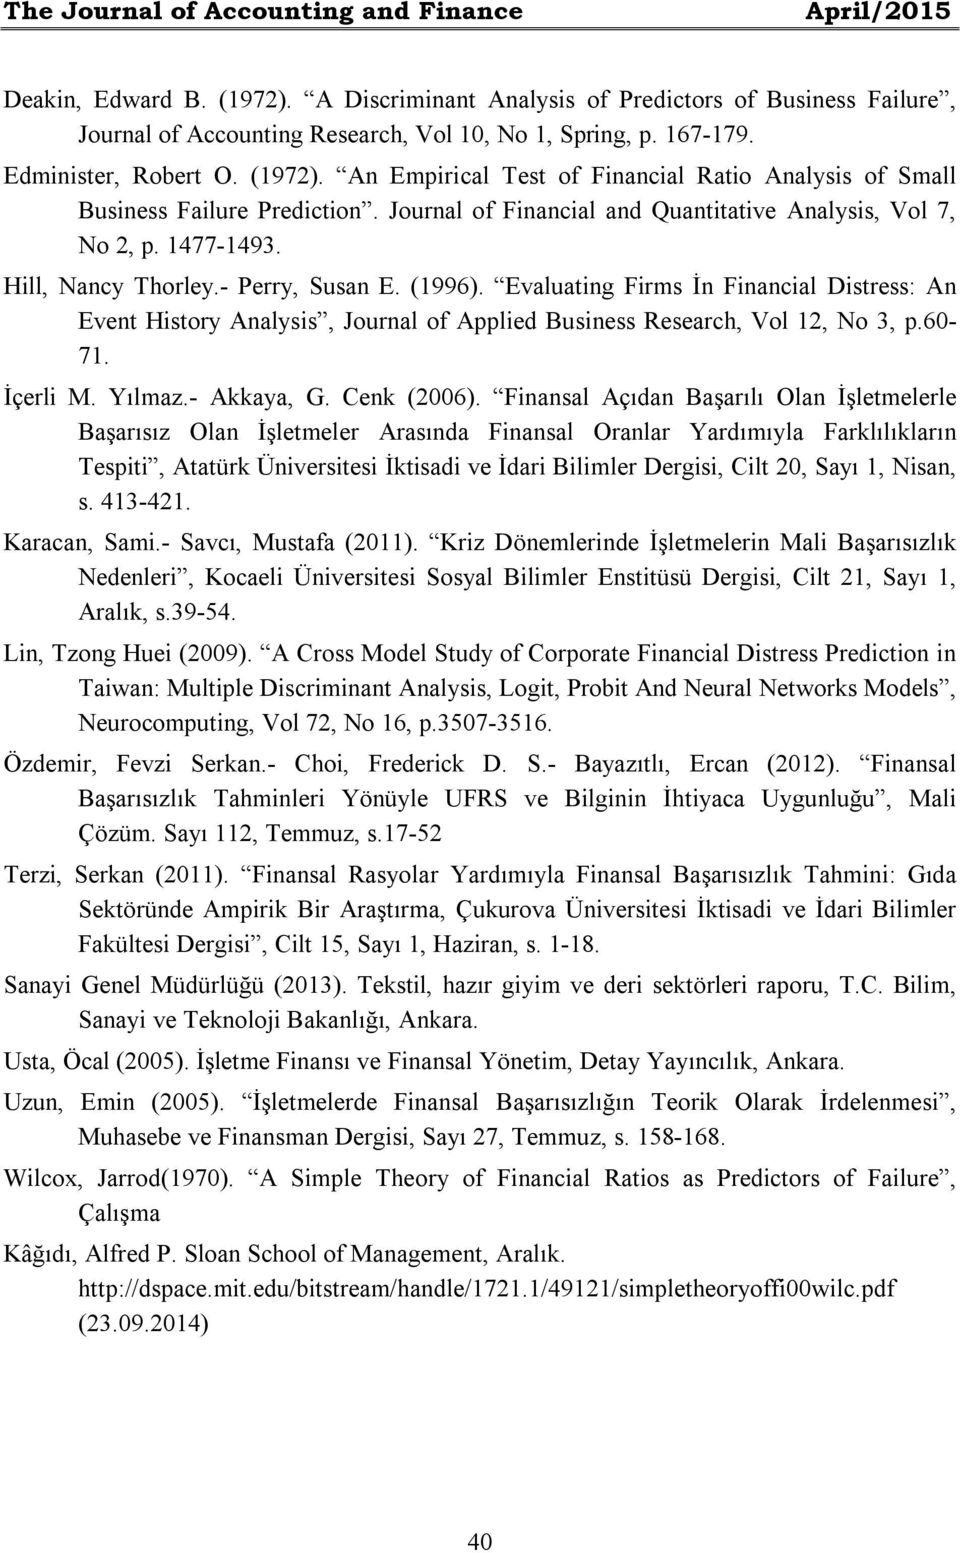 Hill, Nancy Thorley.- Perry, Susan E. (1996). Evaluating Firms İn Financial Distress: An Event History Analysis, Journal of Applied Business Research, Vol 12, No 3, p.60-71. İçerli M. Yılmaz.